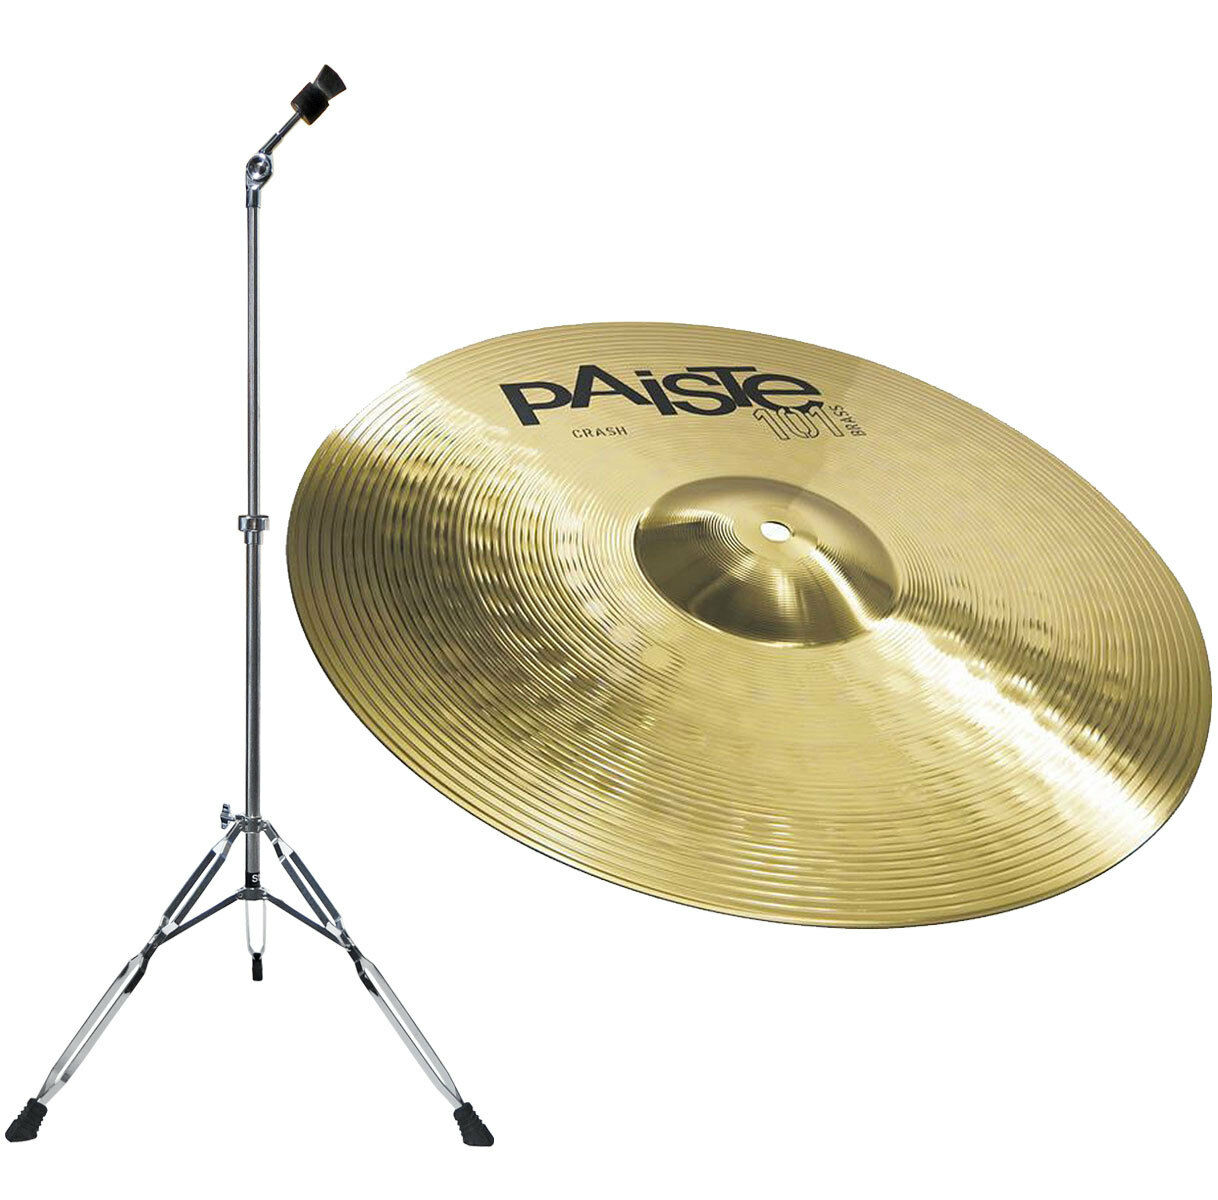 Paiste 101 Messing 14 Absturz Cymbal Stand gerade LYD-25